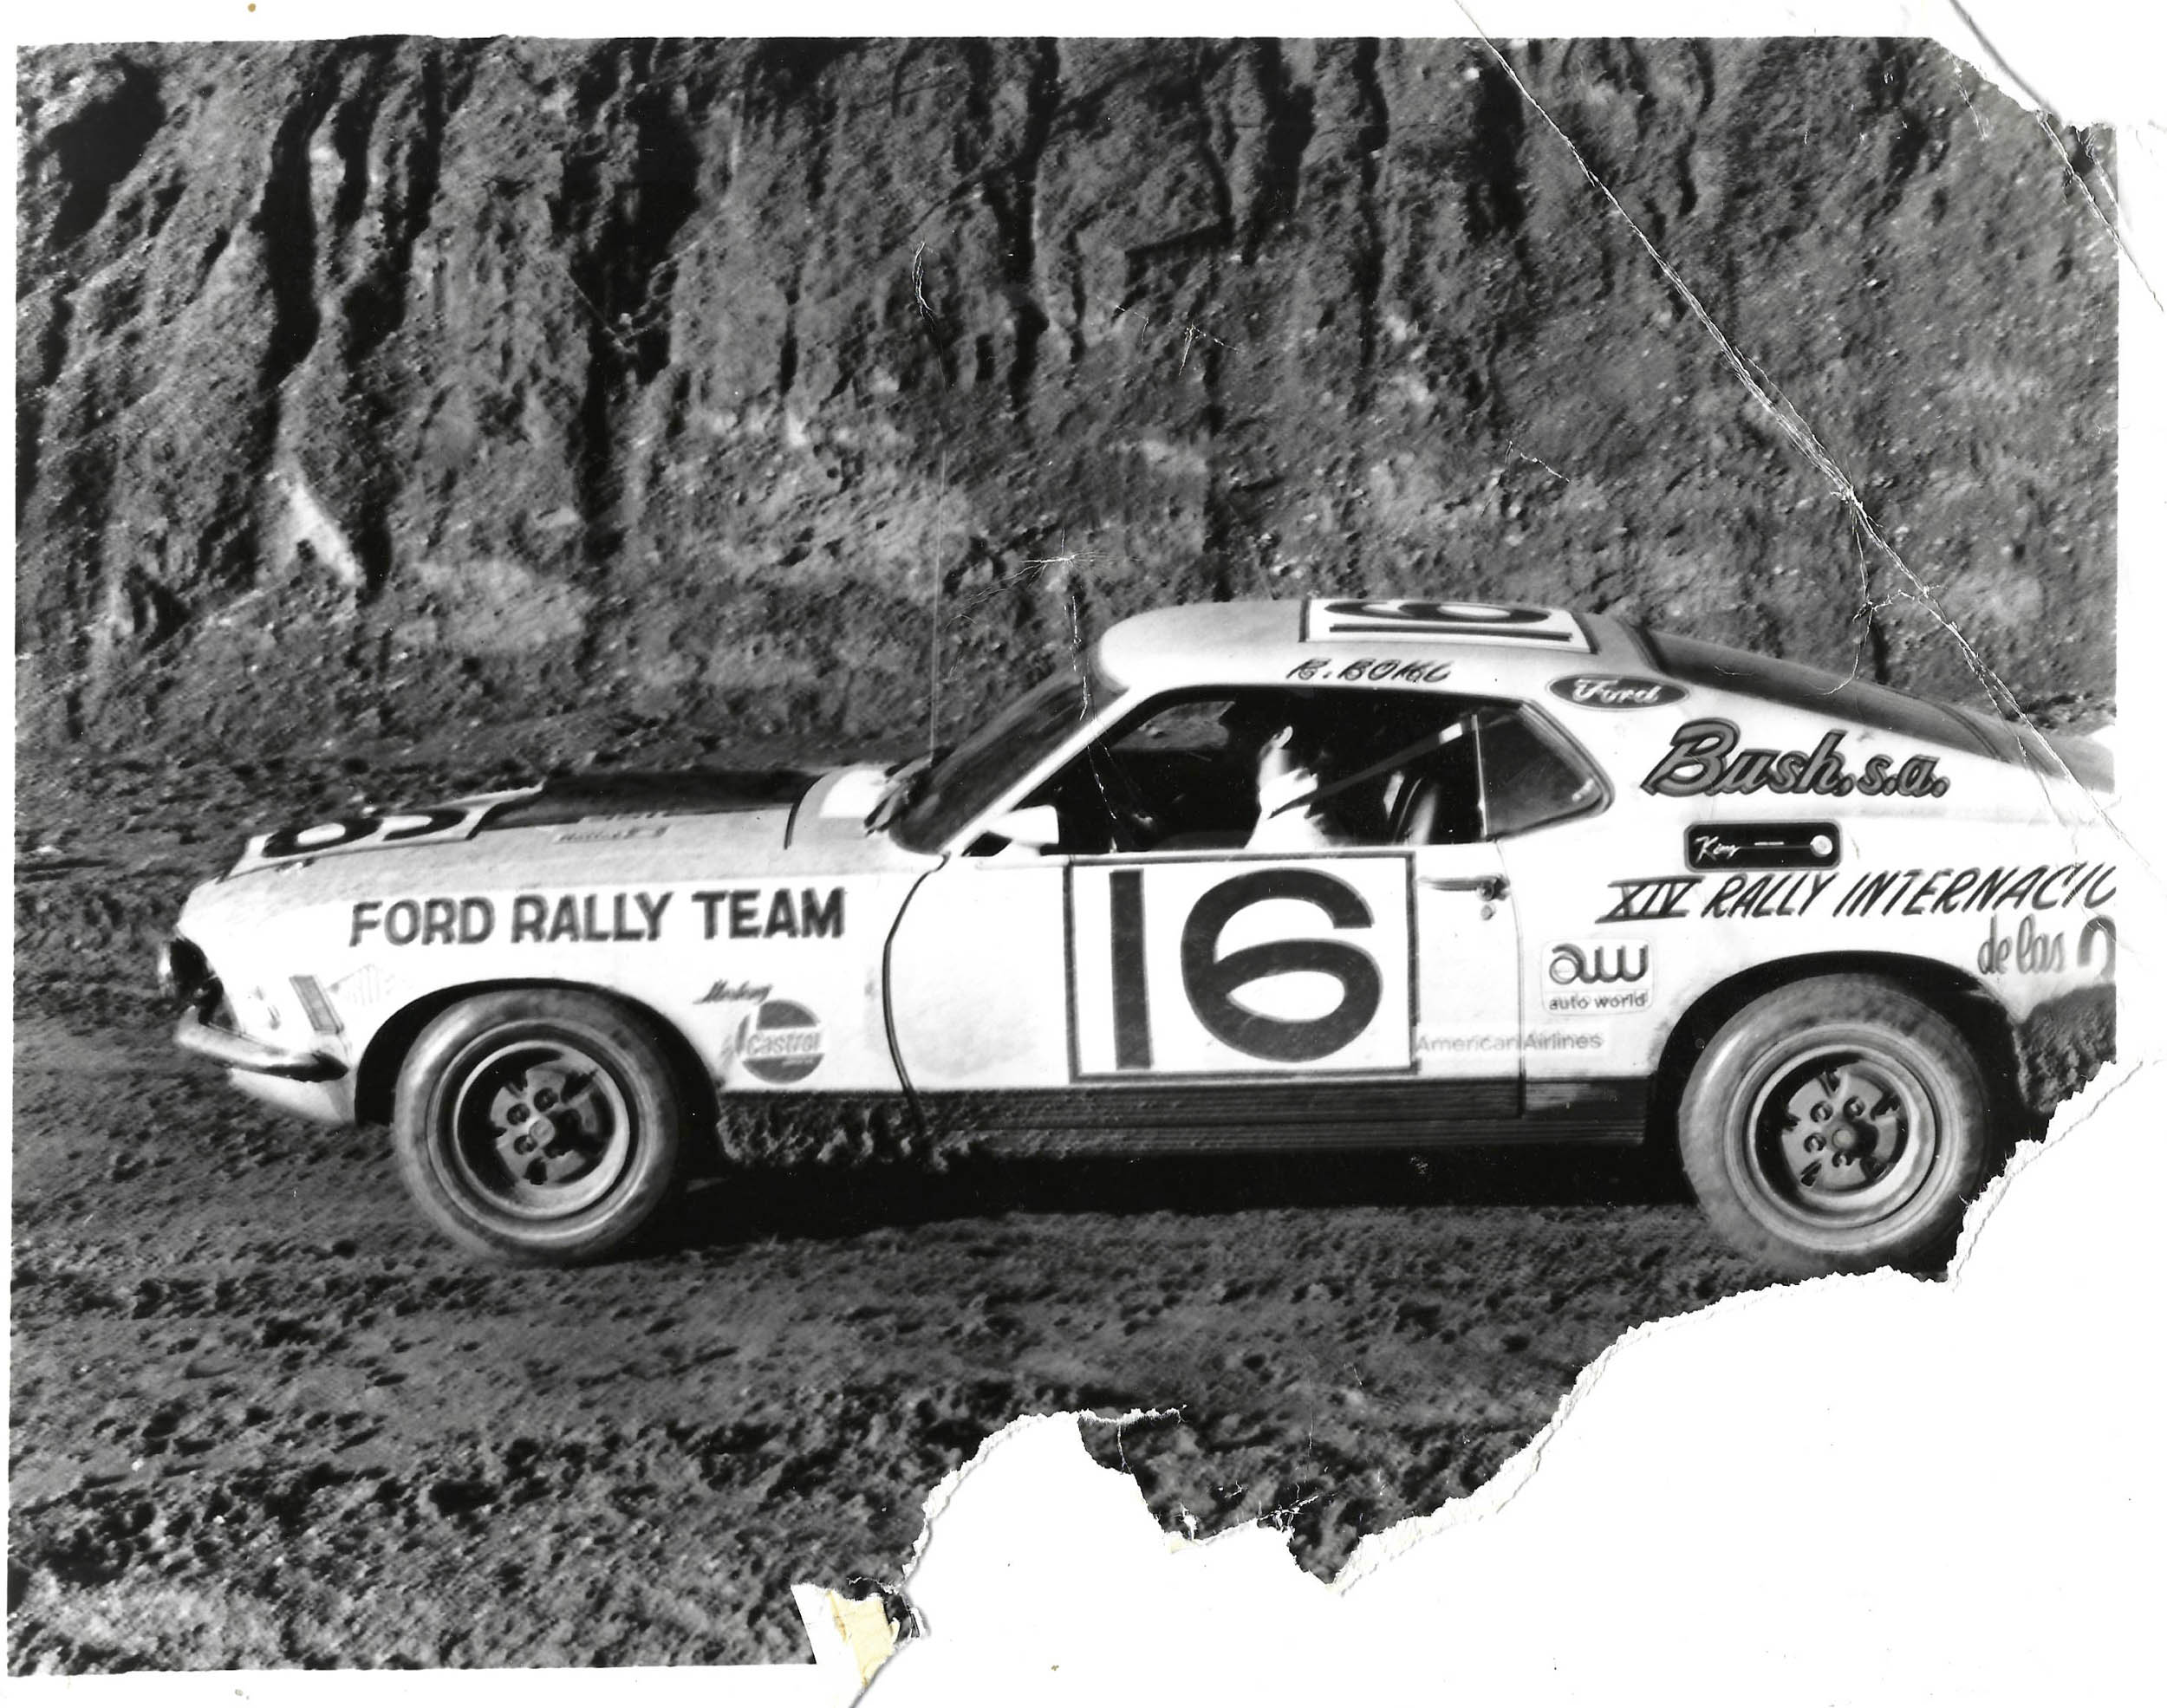 Roger and Kathy Bohl, championship rallyists from New Jersey, compete in a Mexico City rally with their 1970 Mach 1.